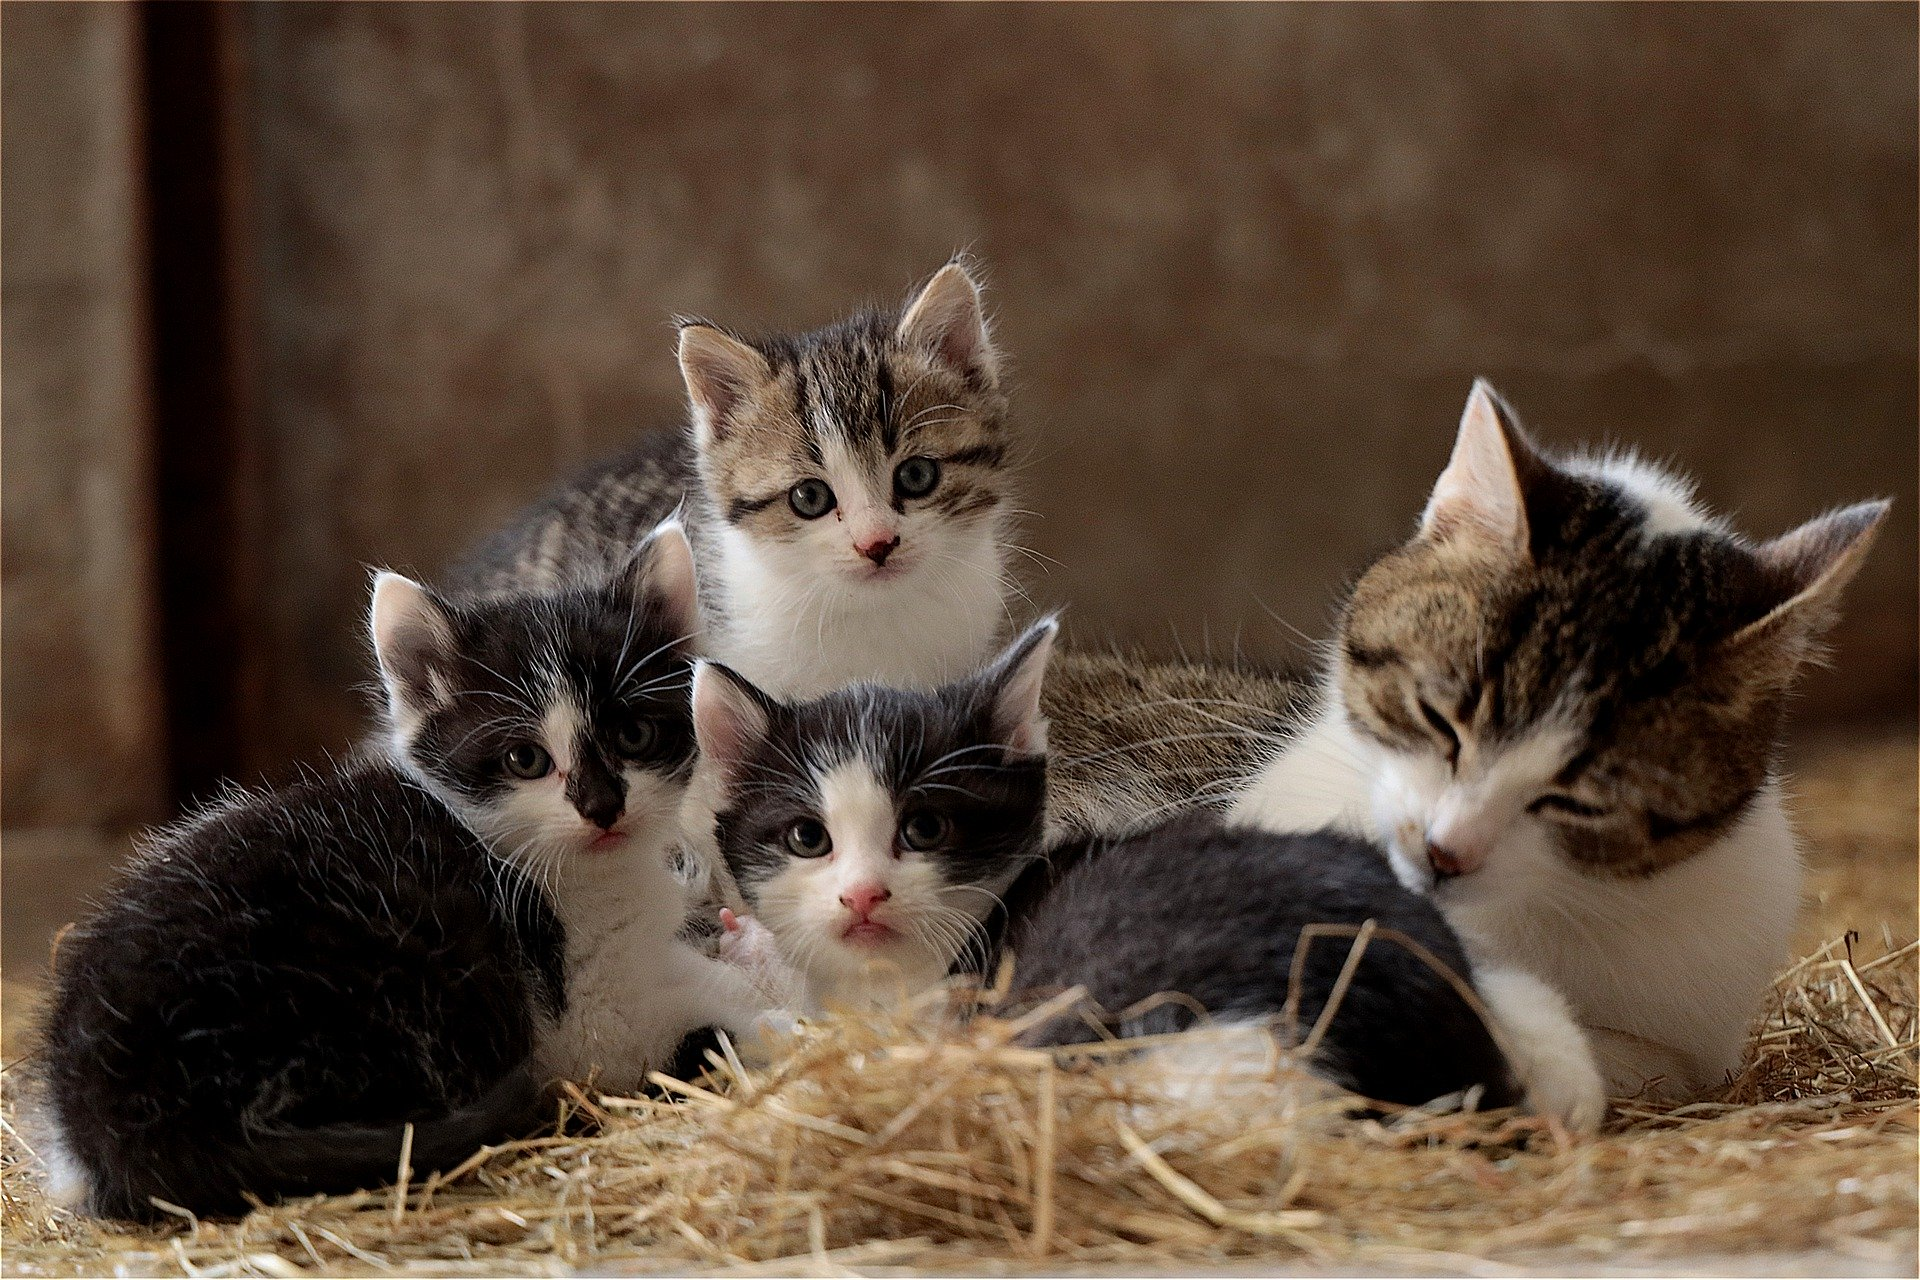 These Are The 22 Most Expensive Kittens To Buy In The Uk Swindon Advertiser